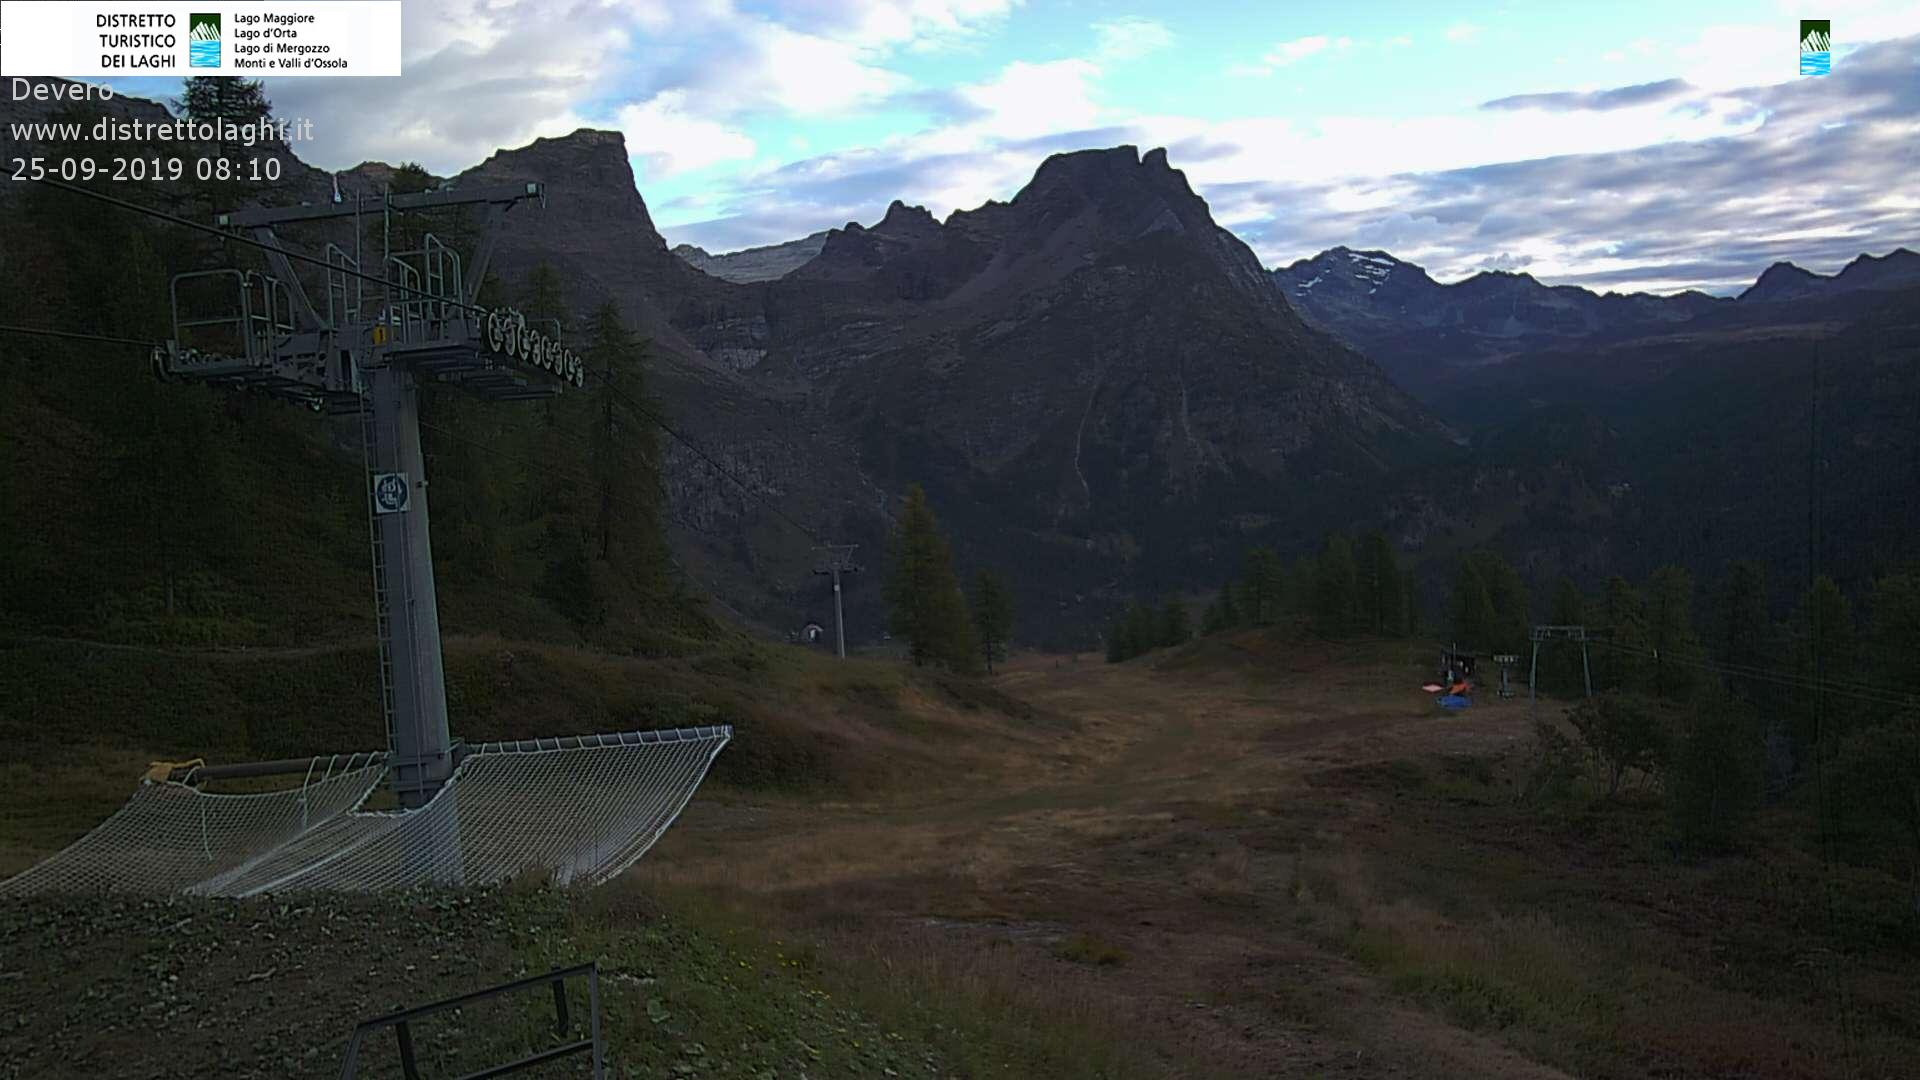 Webcam Alpe Devero